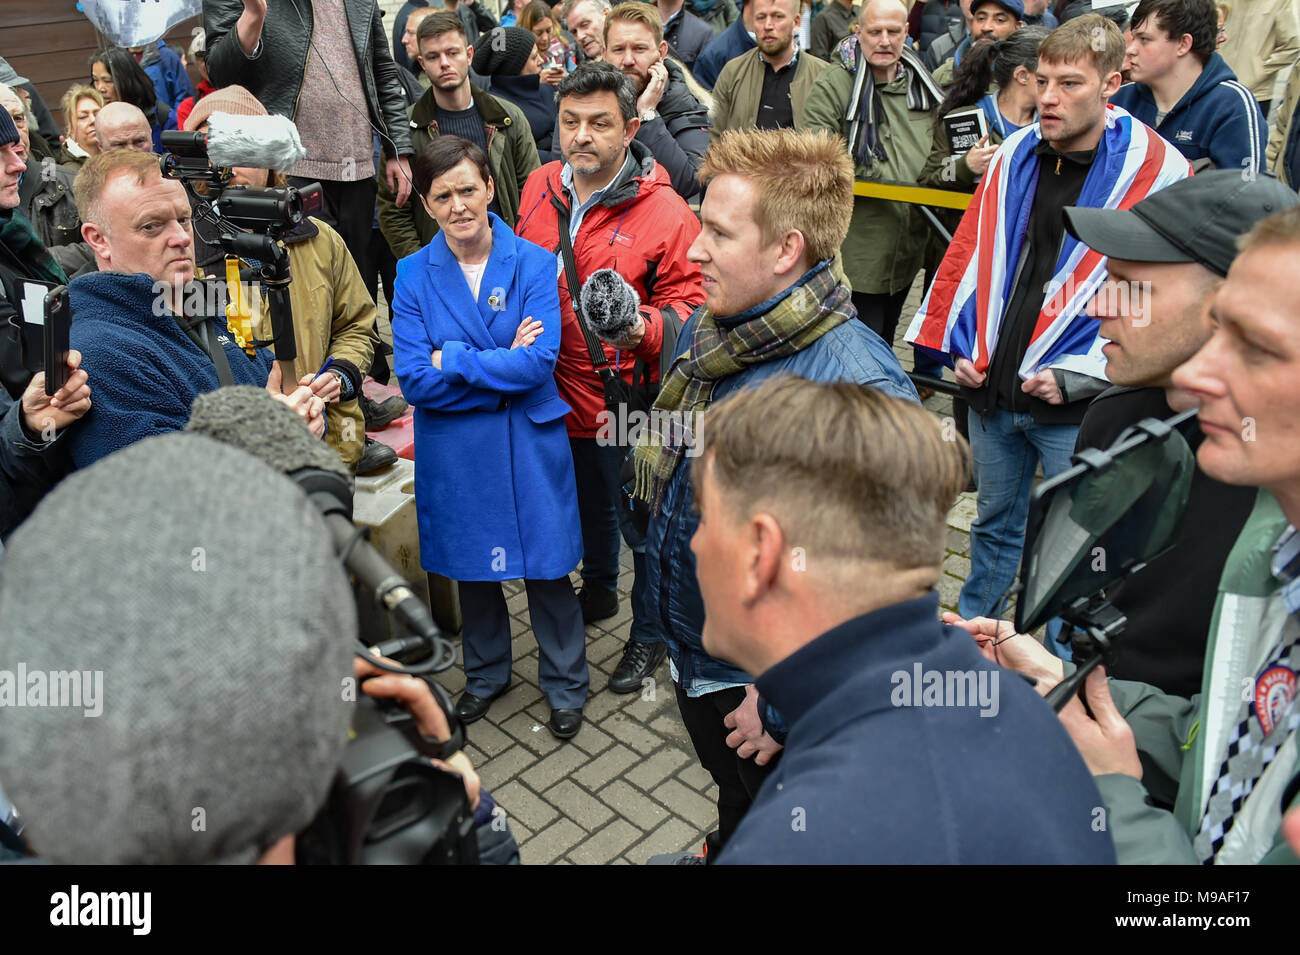 Birmingham, United Kingdom. 24 March 2018. People have gathered for the 'Football Lads Alliance' (FLA) demonstration in Birmingham. There were speeches from John Mieghan, Anne Marie Waters, Luke Nash-Jones and Aline Moraes. After a short march the group dispersed in Edgbaston St. Pictured: Anne Marie Waters & John Mieghan  Credit: Peter Manning/Alamy Live News - Stock Image